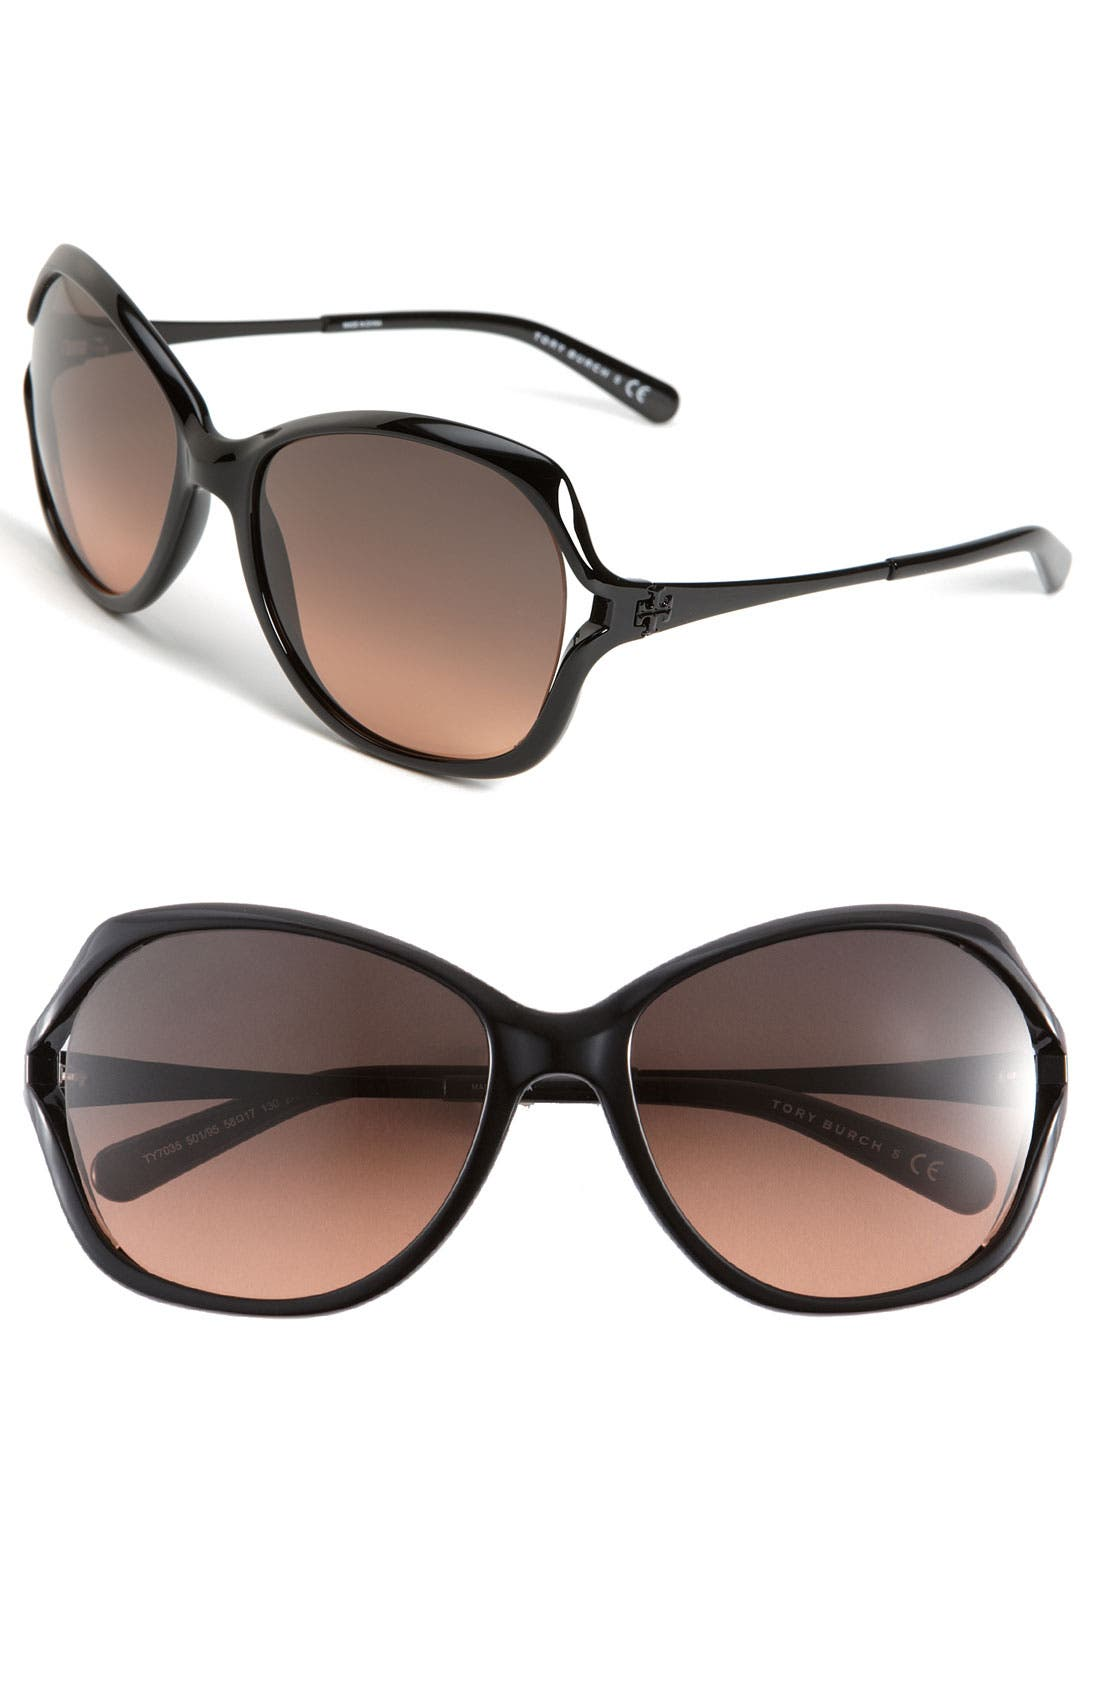 TORY BURCH,                             59mm Open Lens Butterfly Sunglasses,                             Main thumbnail 1, color,                             001